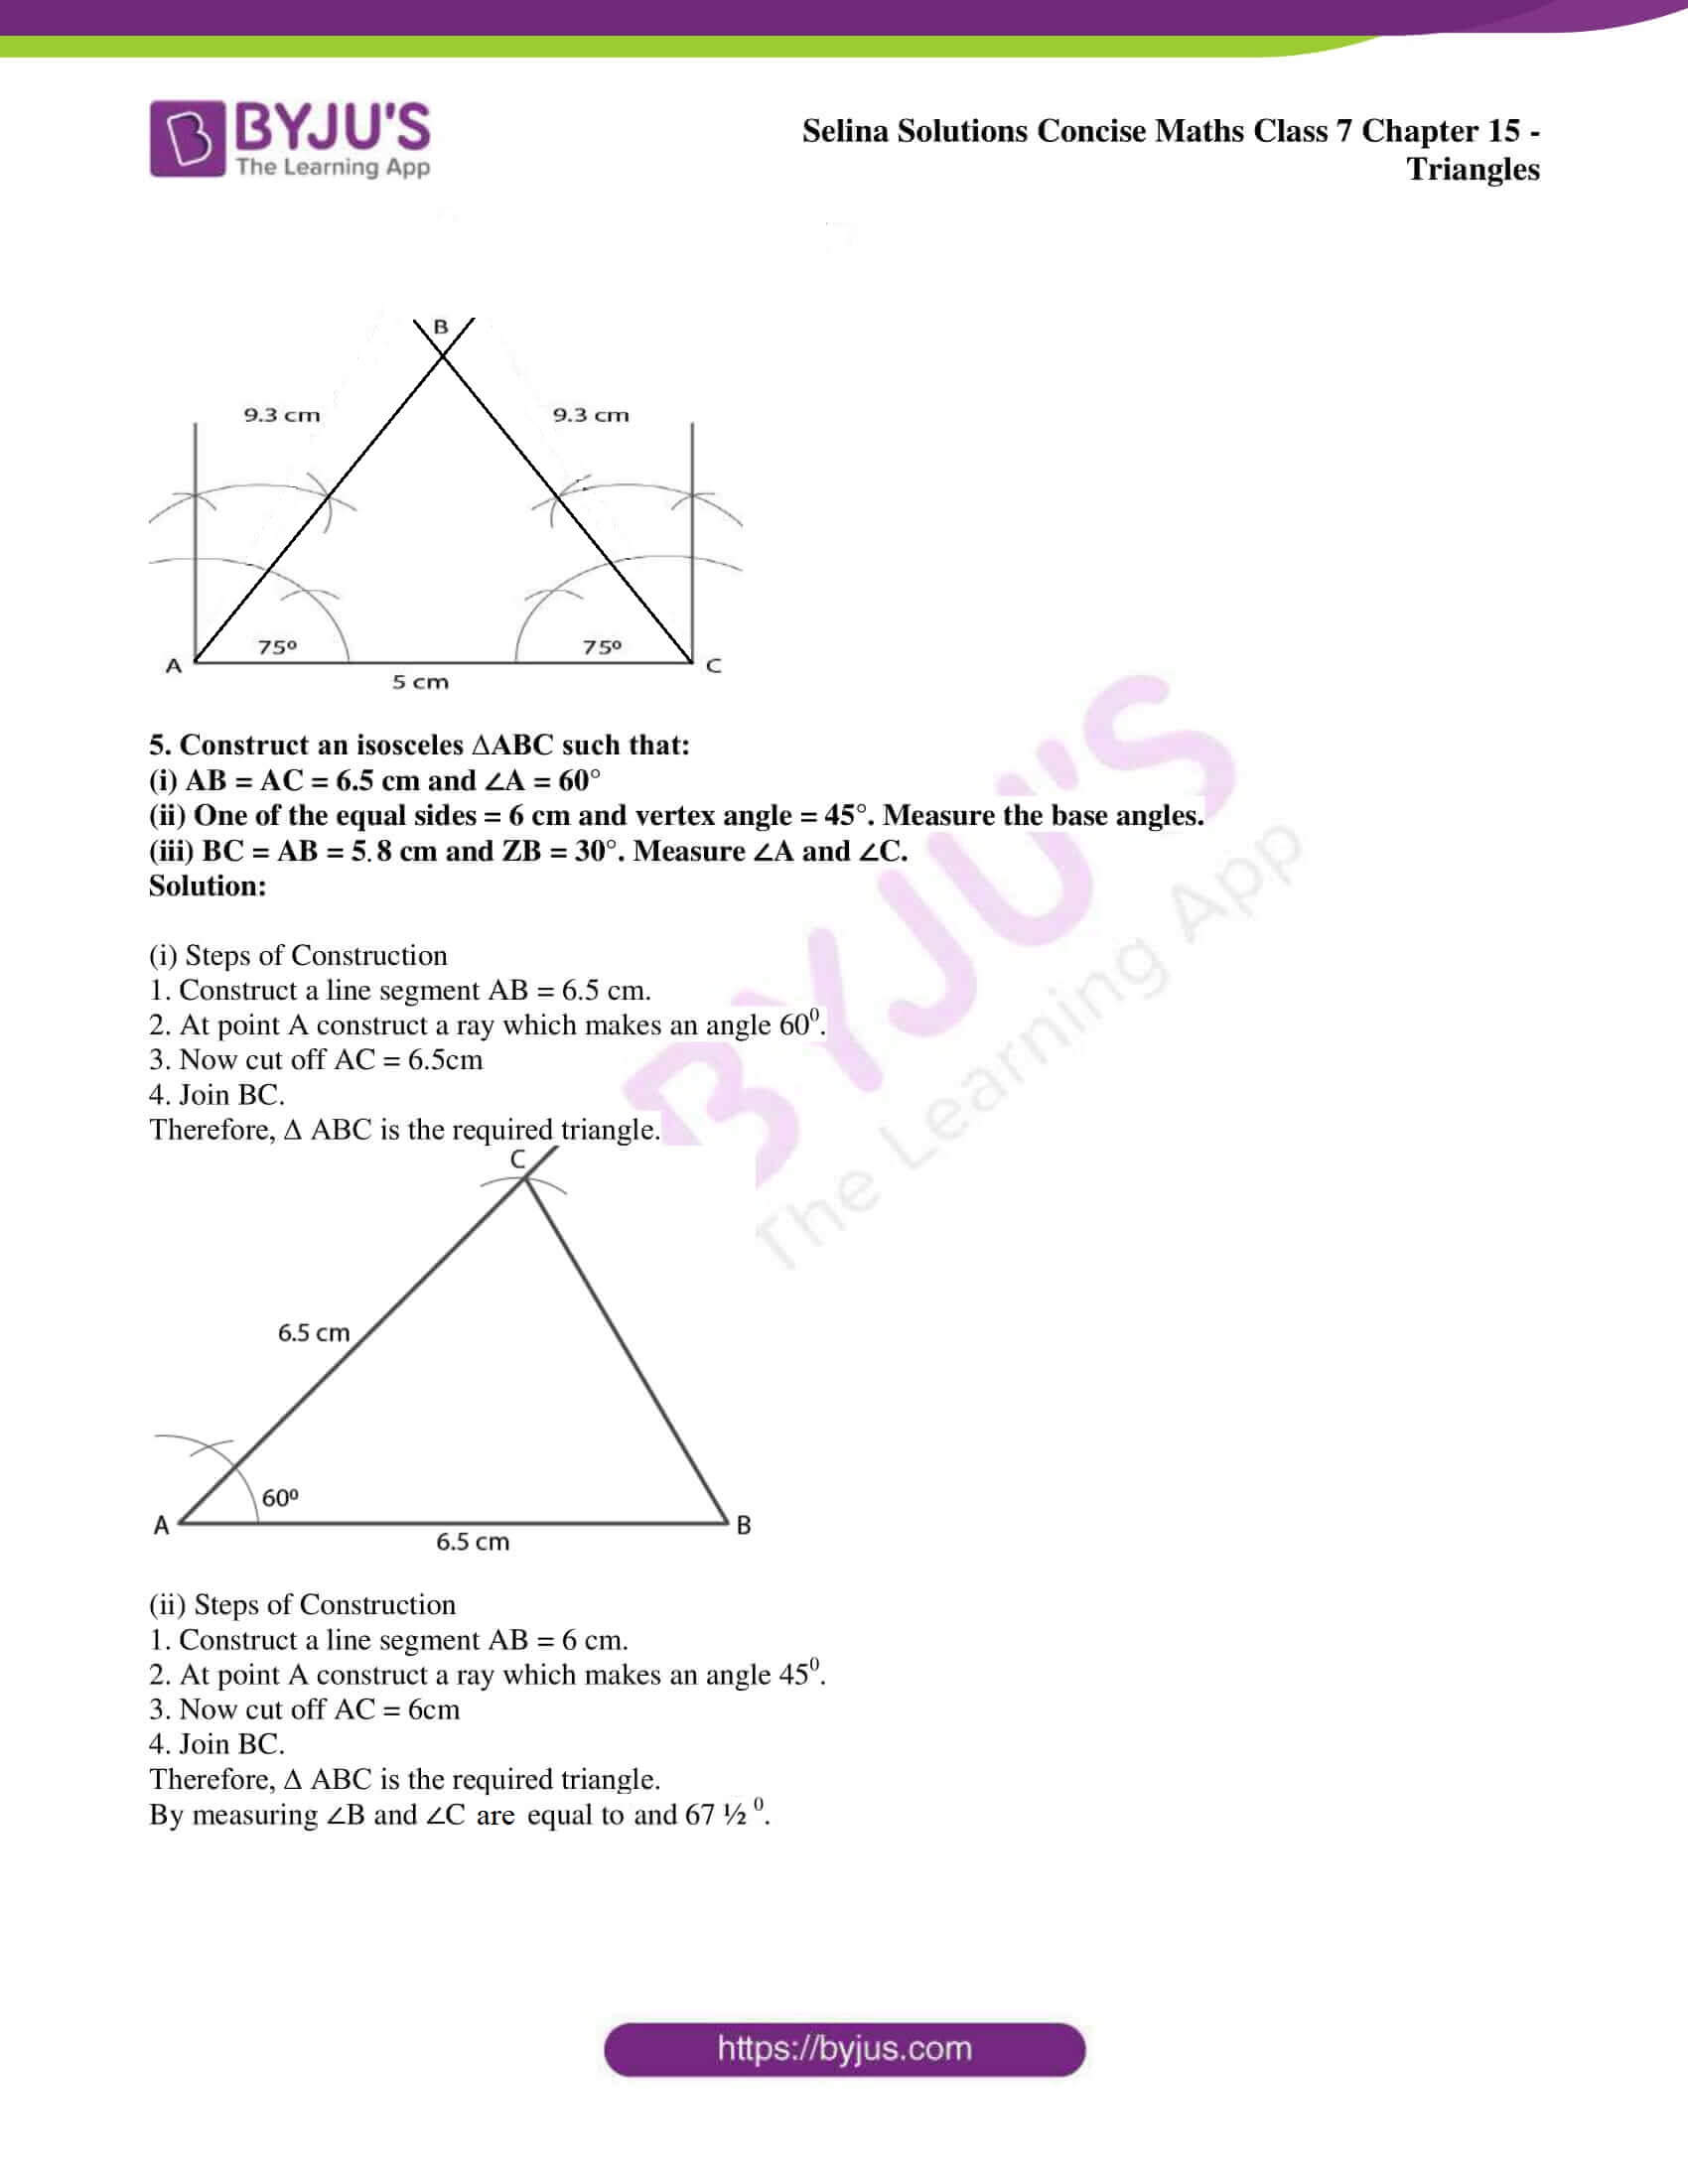 selina sol concise maths class 7 chapter 15 ex c 06